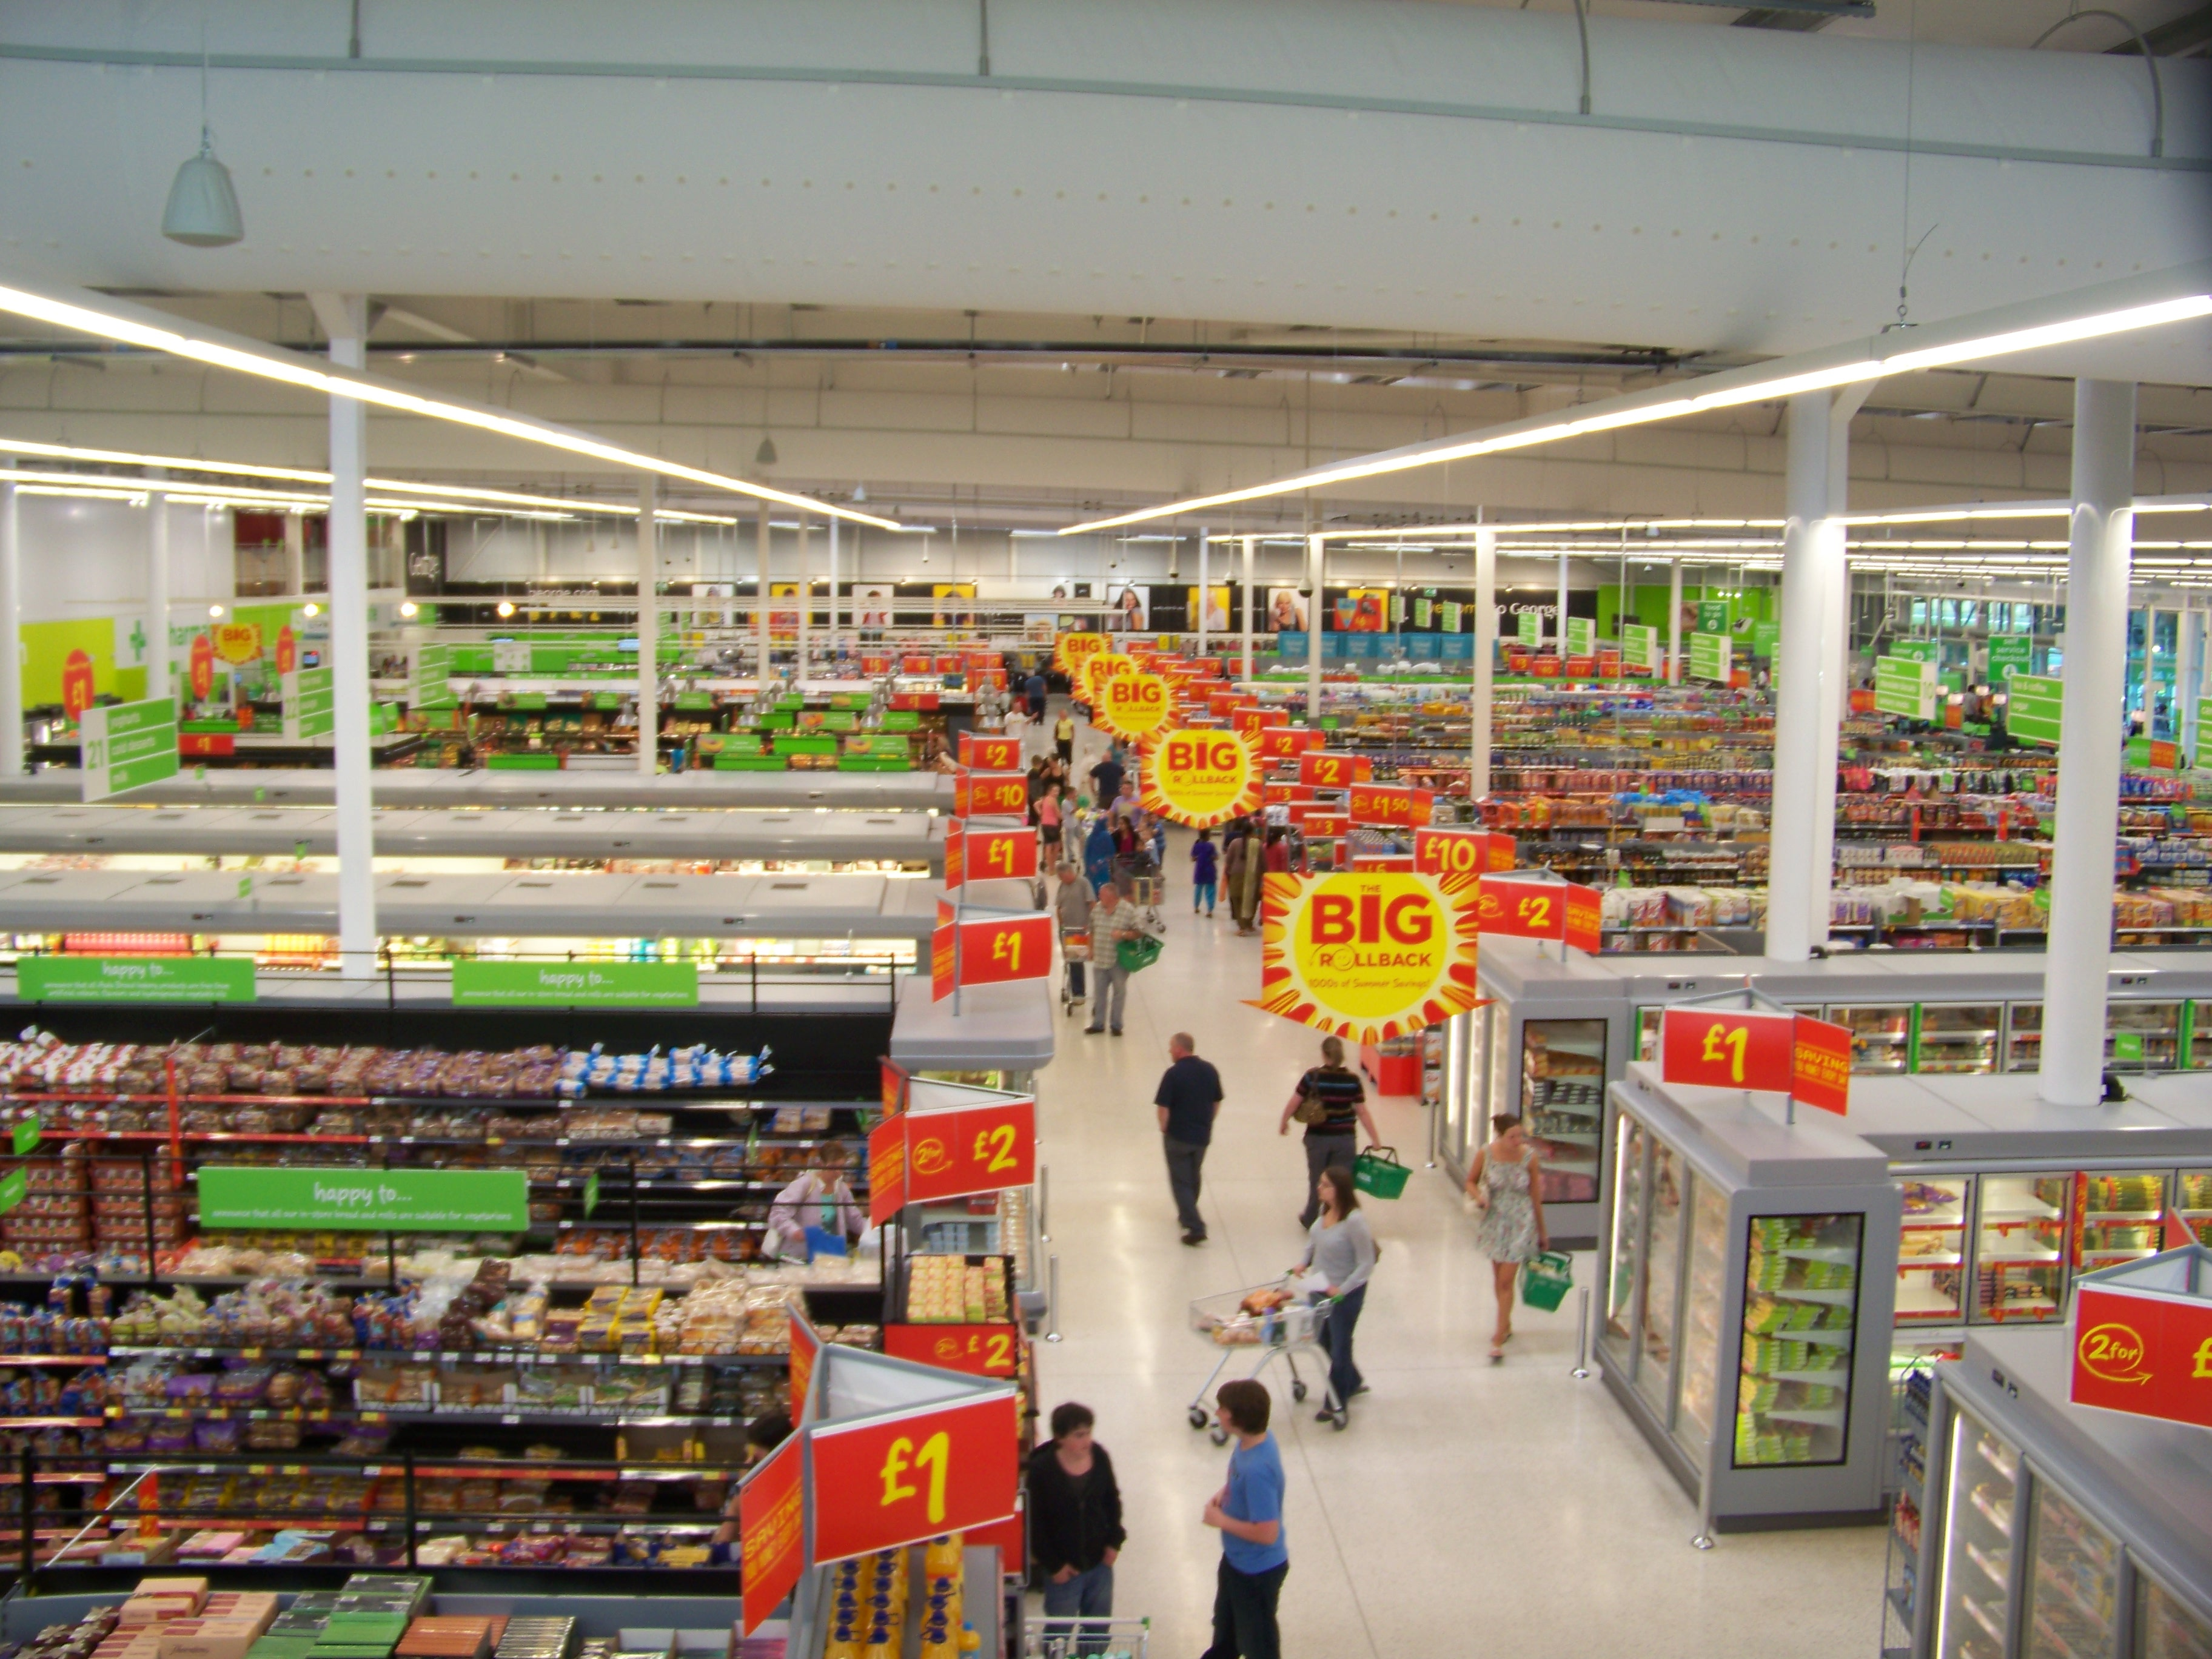 Walmart's Asda to Cut 1,360 Jobs in Company Restructure – Sourcing